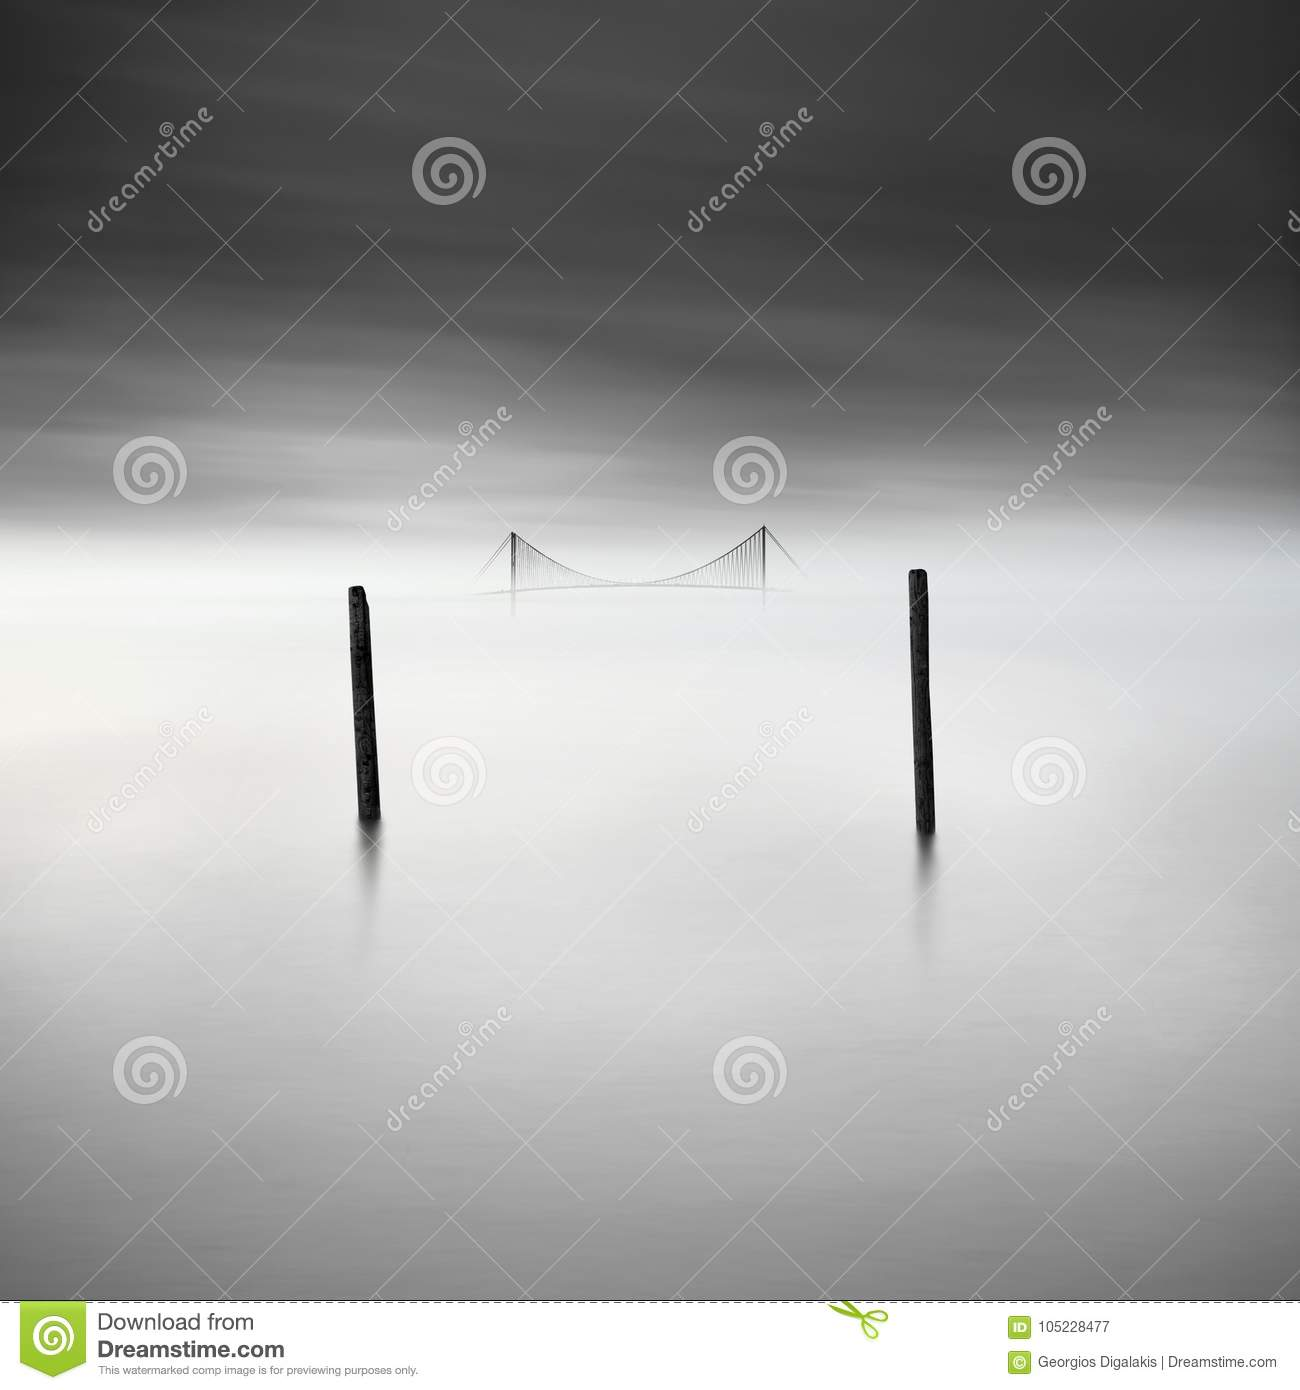 Two posts and a bridge